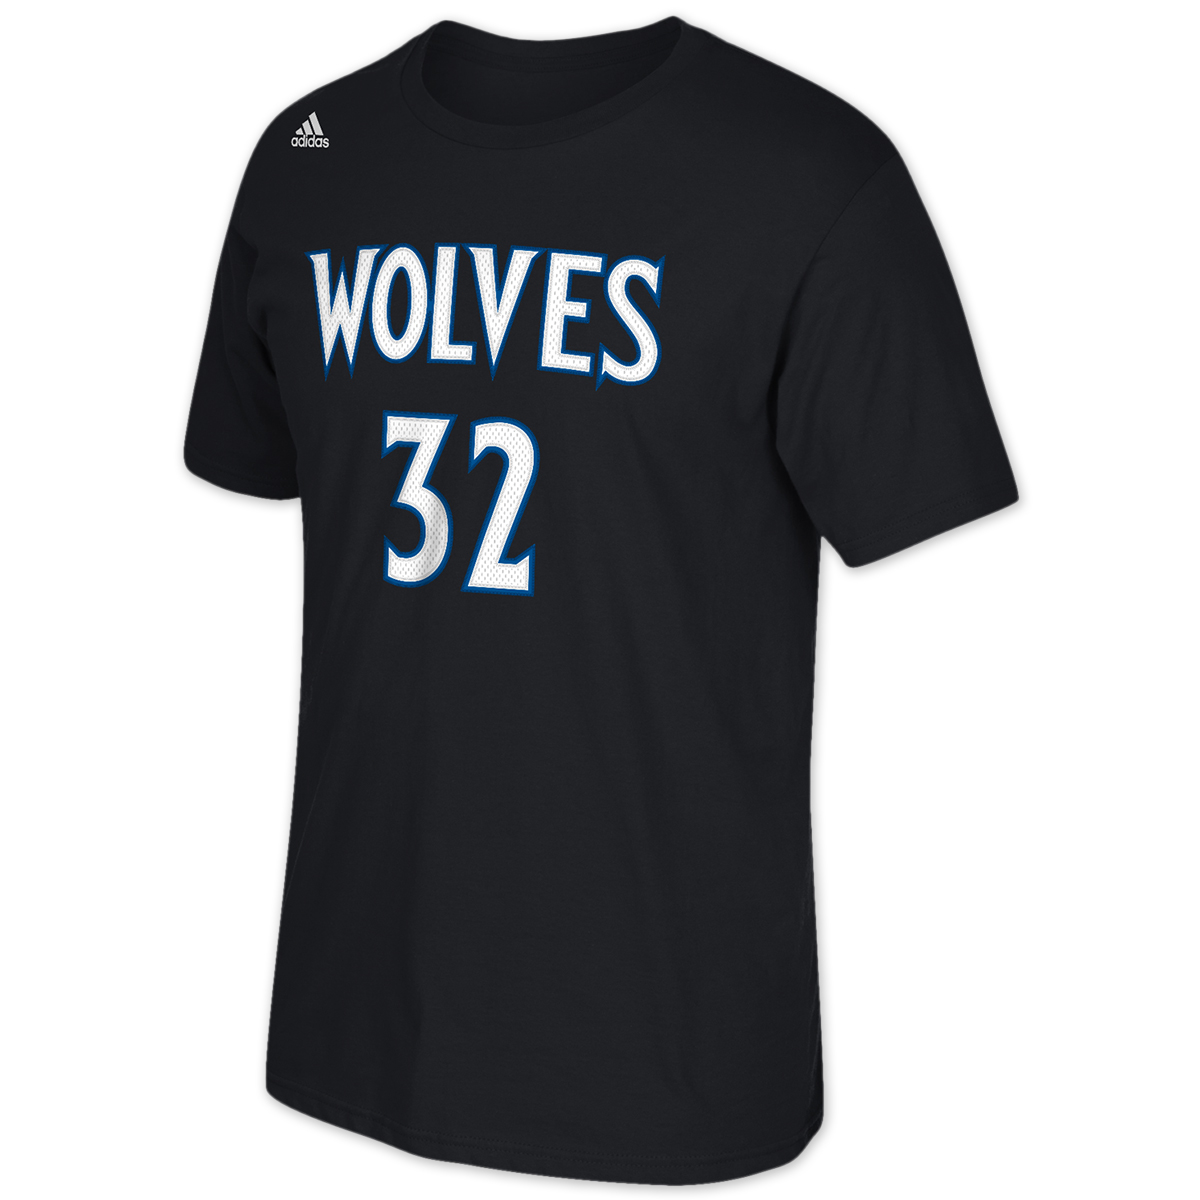 The Minnesota Timberwolves (also commonly known as the Wolves) are an American professional basketball team based in Minneapolis, Minnesota. The Timberwolves compete in the National Basketball Association (NBA) as a member club of the league's Western Conference Northwest Division.